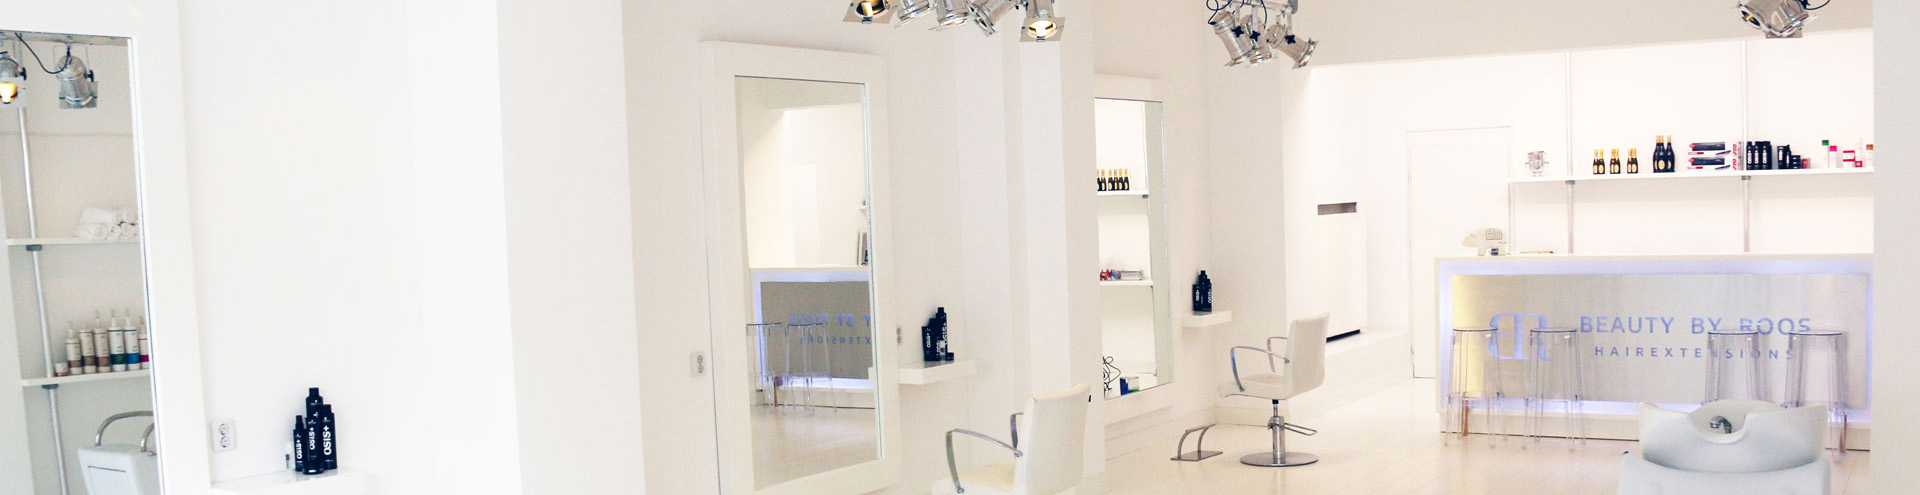 Hengelo Beauty by Roos Hairextensions salon